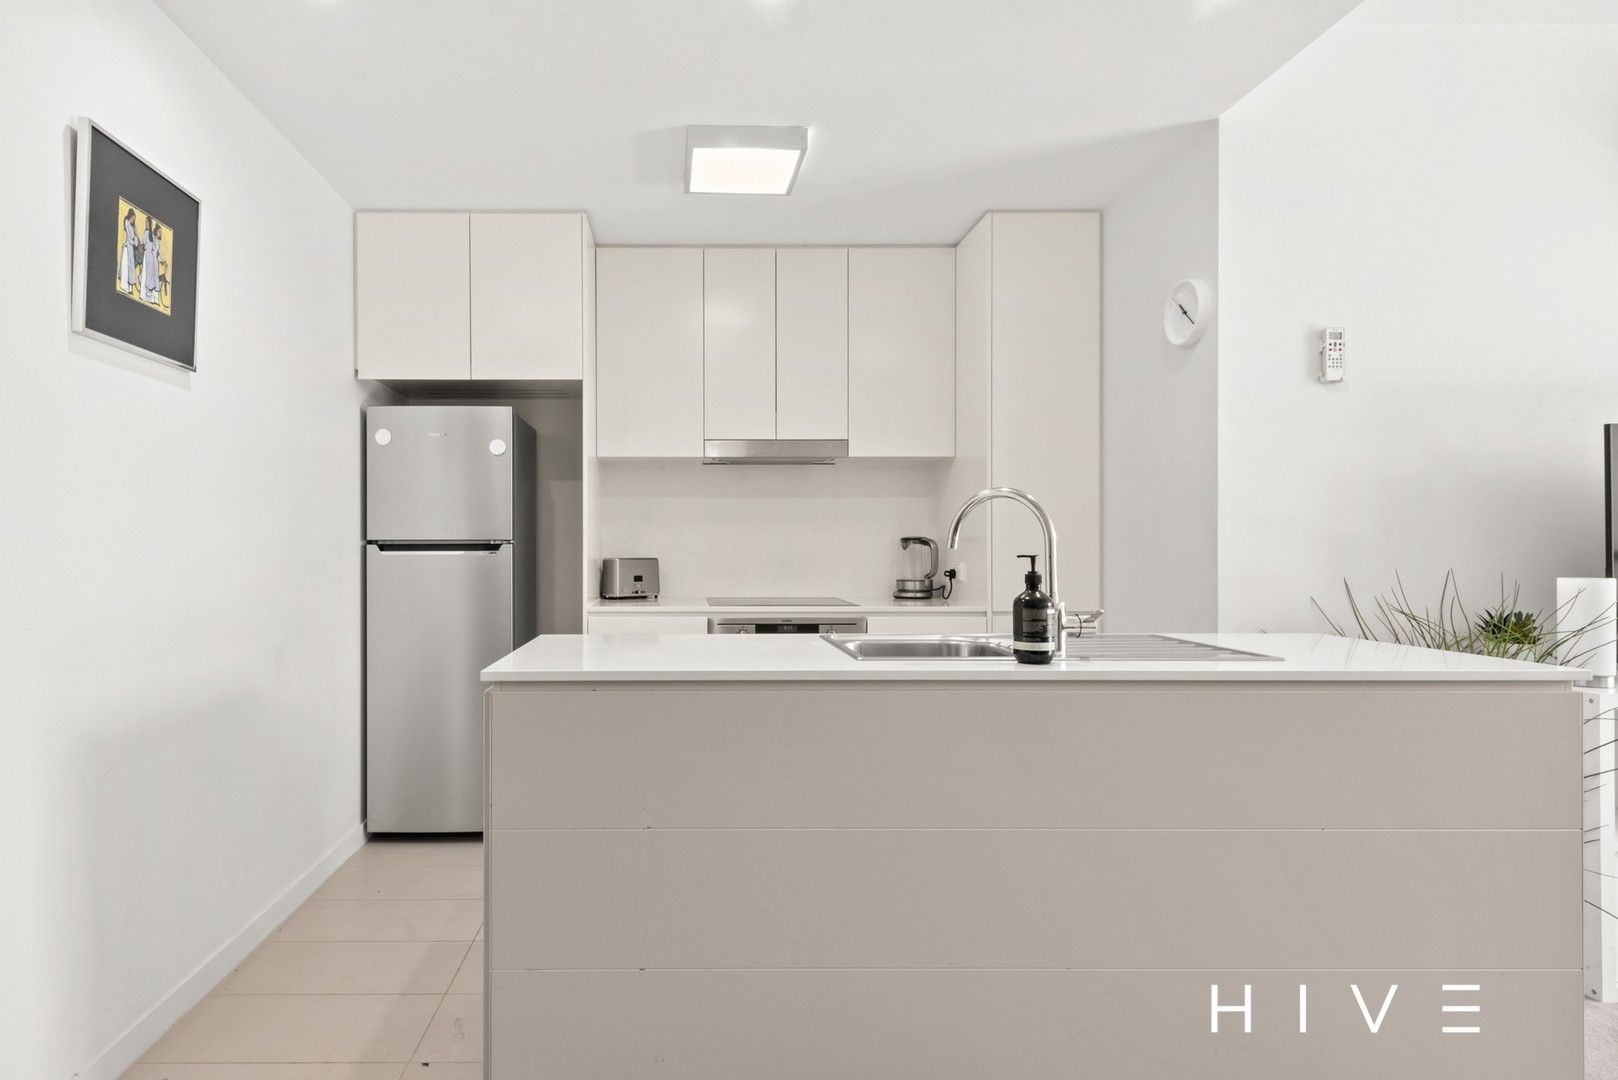 2 bedrooms Apartment / Unit / Flat in 73/5 Burnie  Street LYONS ACT, 2606